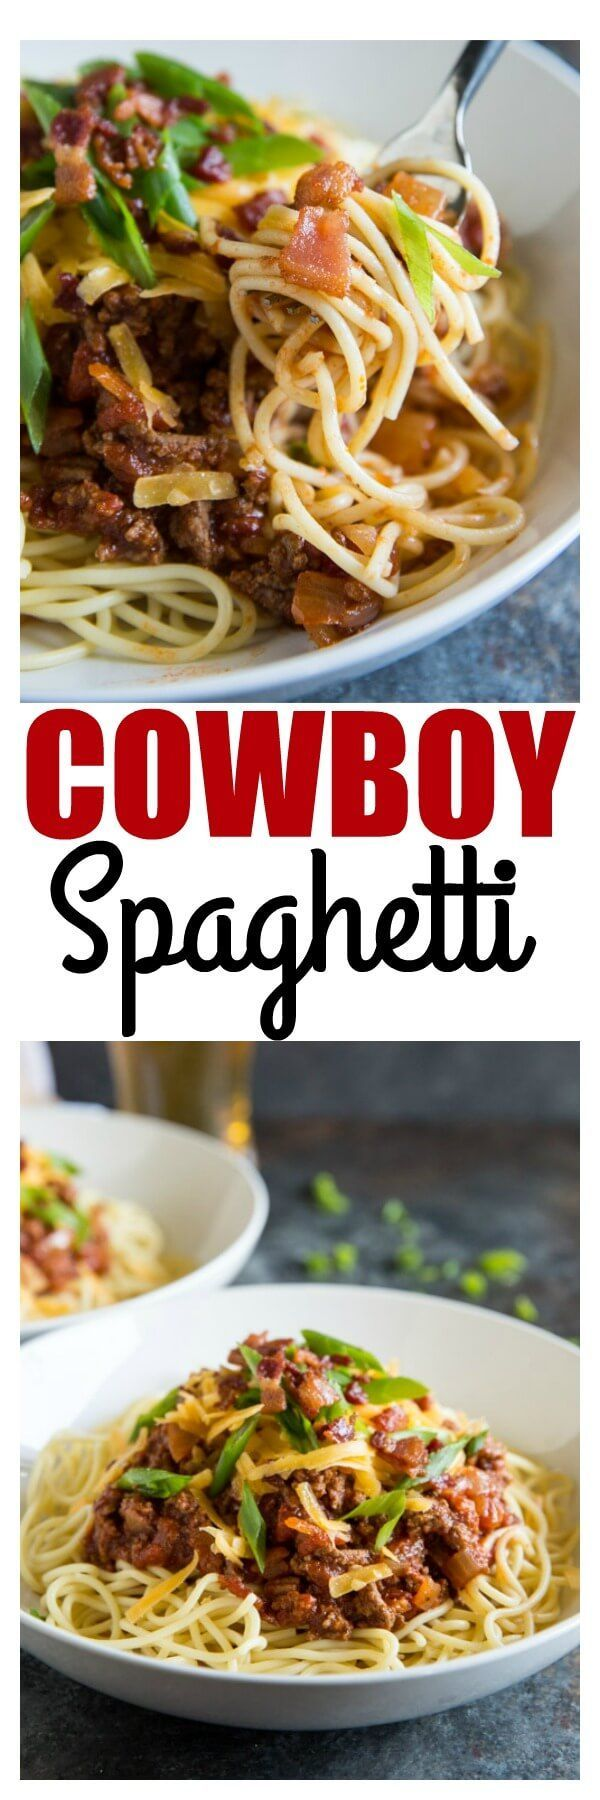 Trust no one but cowboys to upgrade your spaghetti. Bacon, cheese, and lots of hot sauce make Cowboy Spaghetti a family favorite!